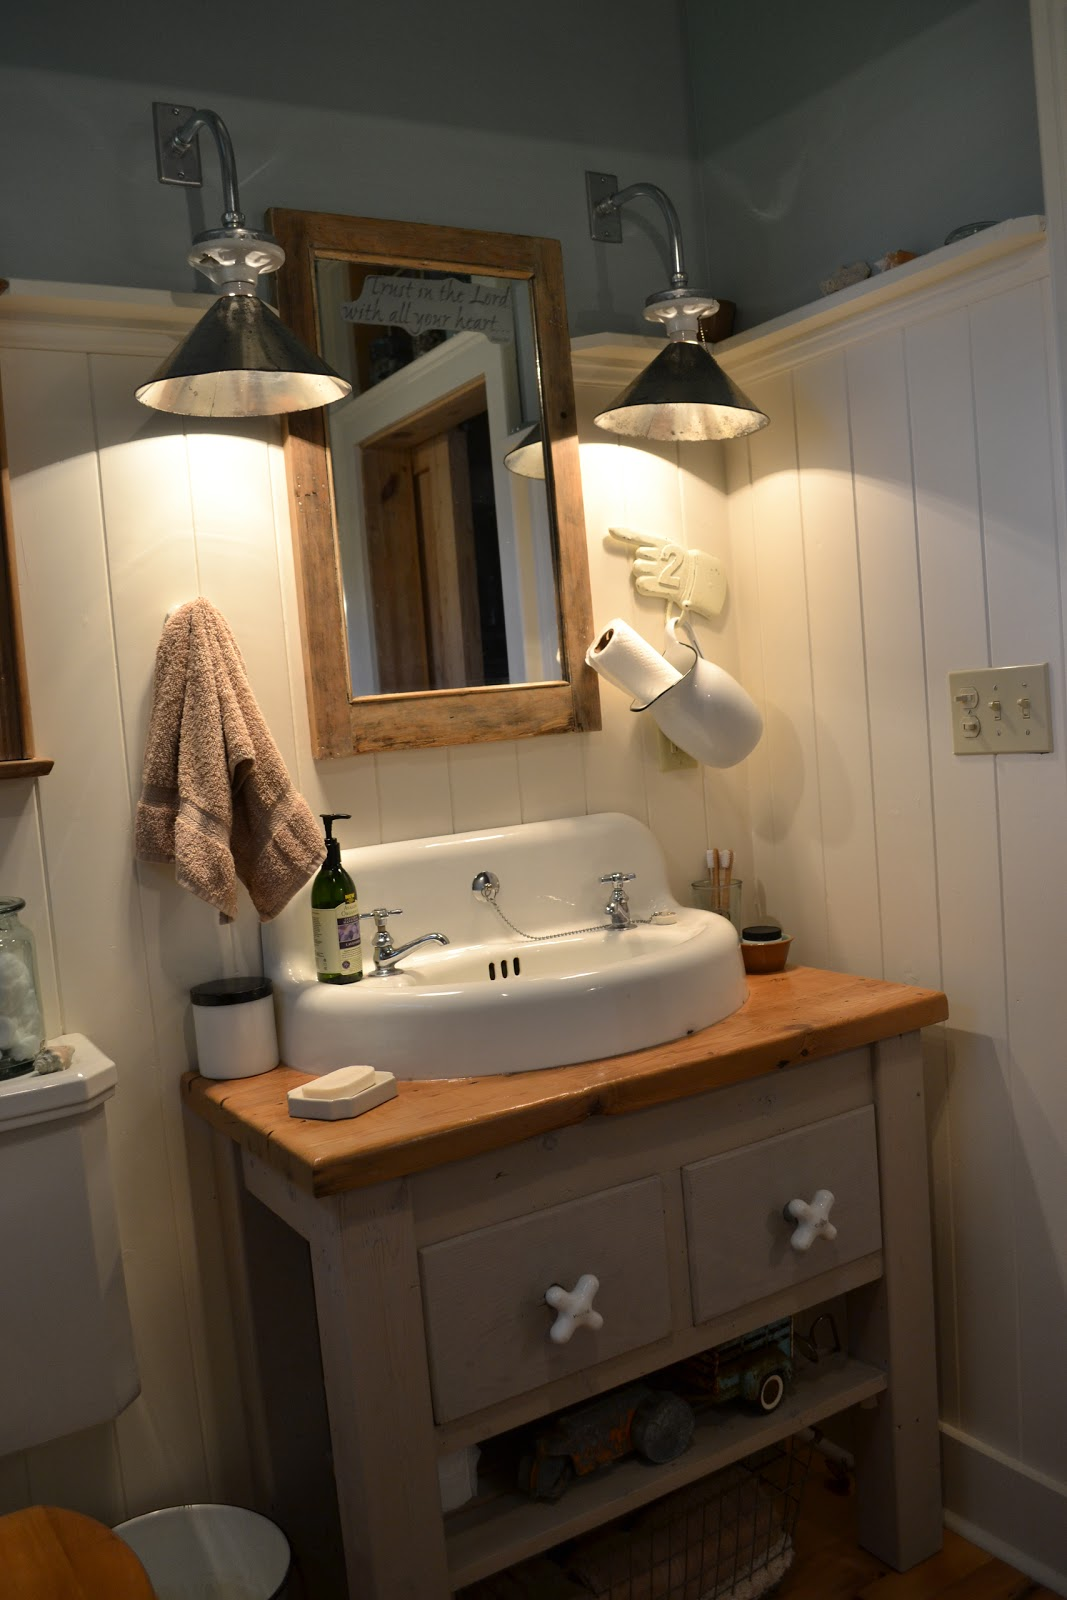 The 1829 Farmhouse: farmhouse tour: bathroom